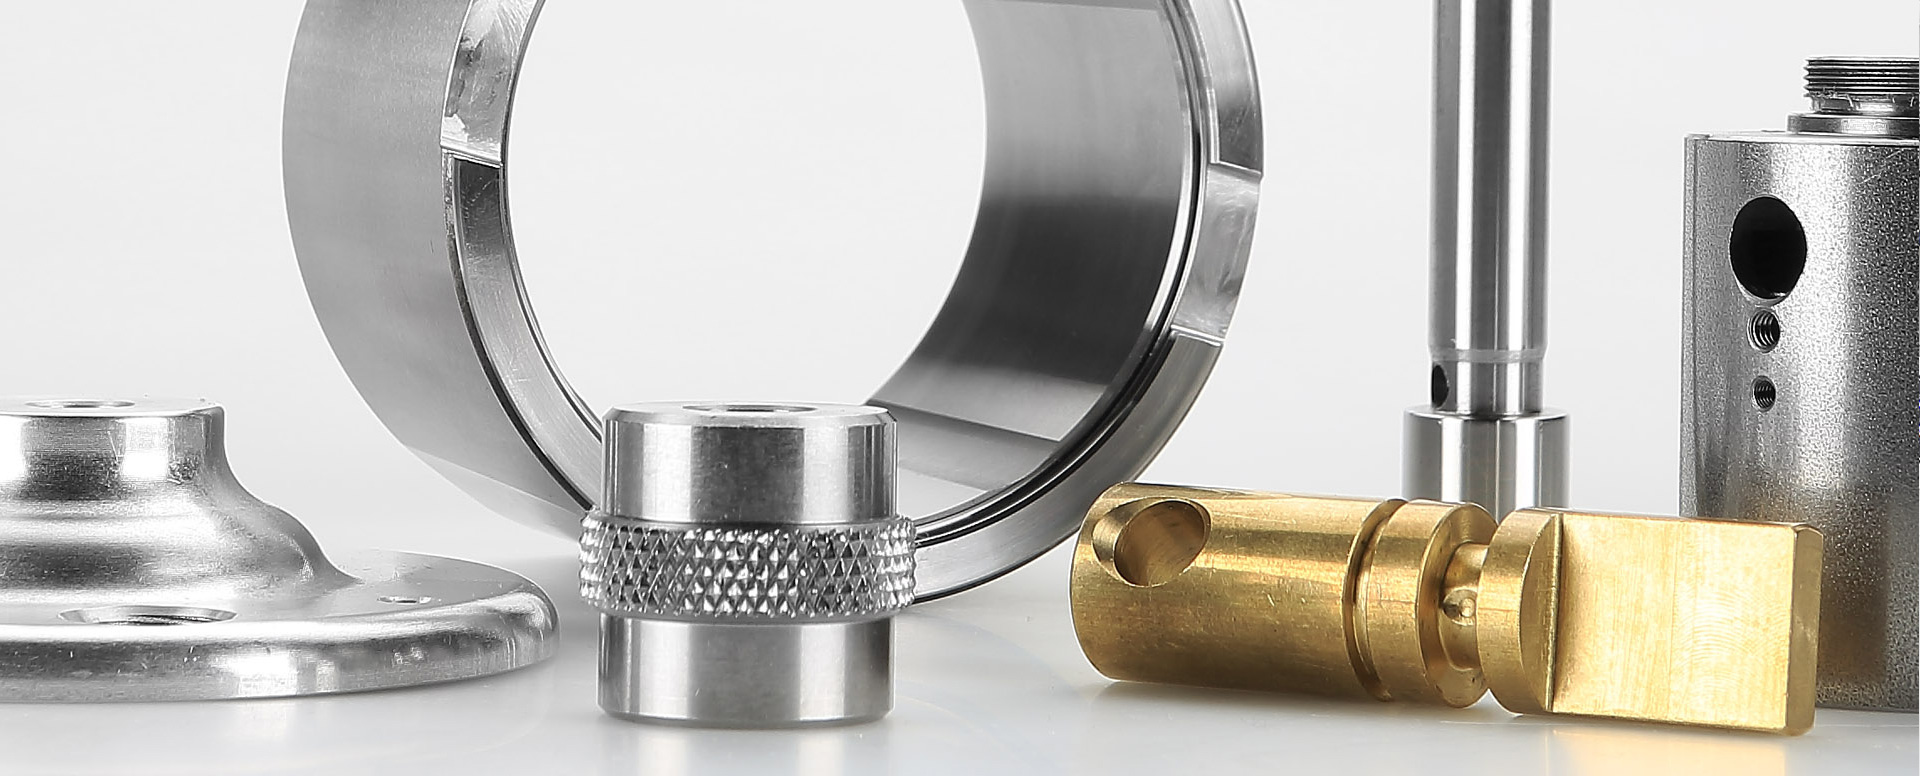 Precision machining of pieces with a high level of requirements